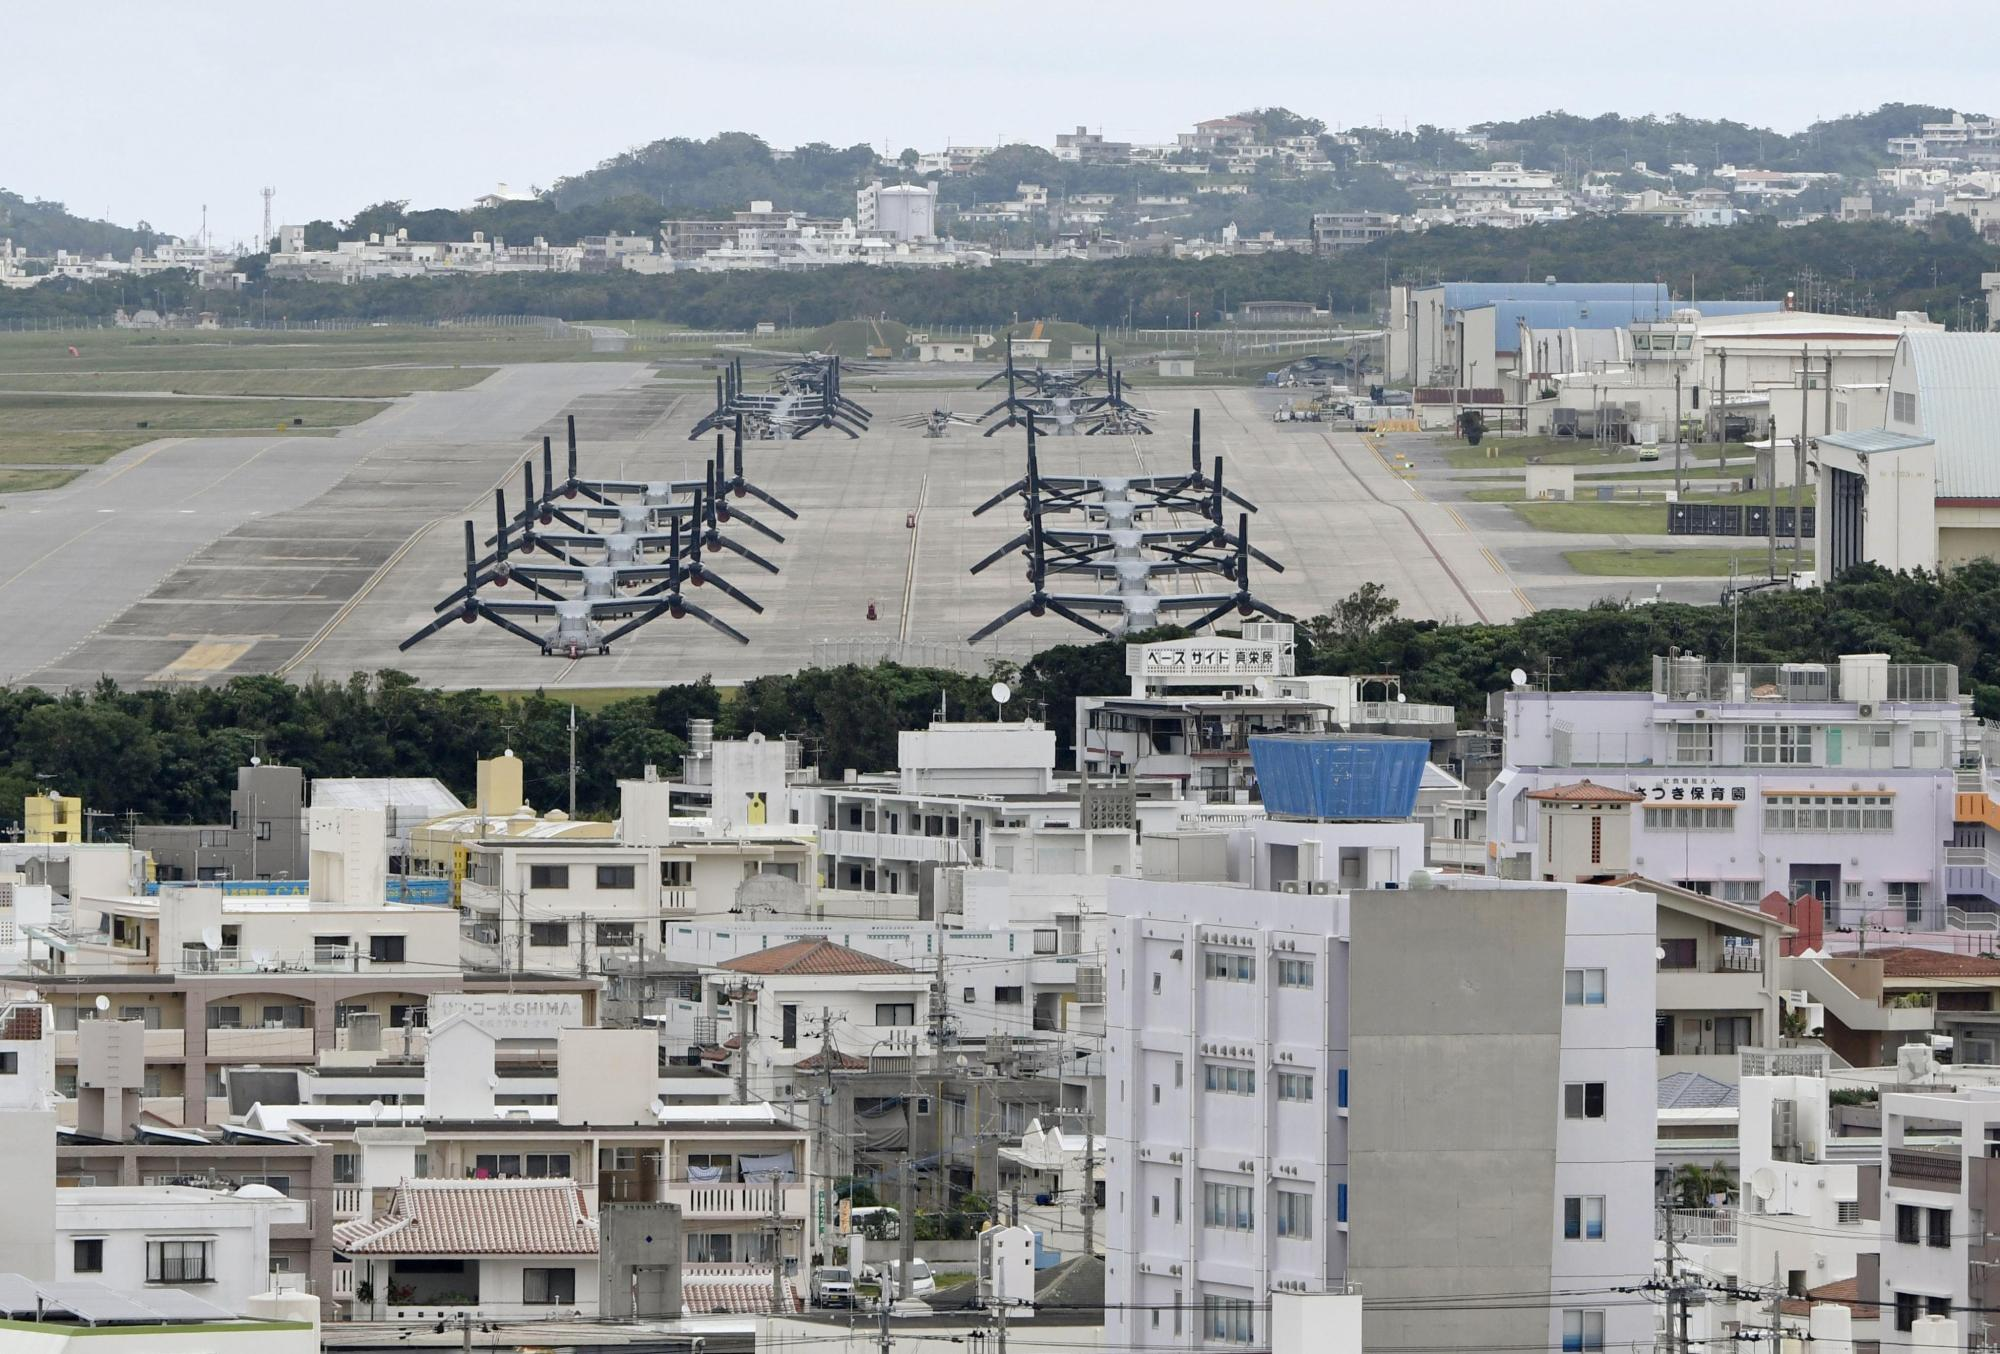 U.S. Marine Corps Air Station Futenma is surrounded by a crowded residential area in Ginowan, Okinawa Prefecture. | KYODO